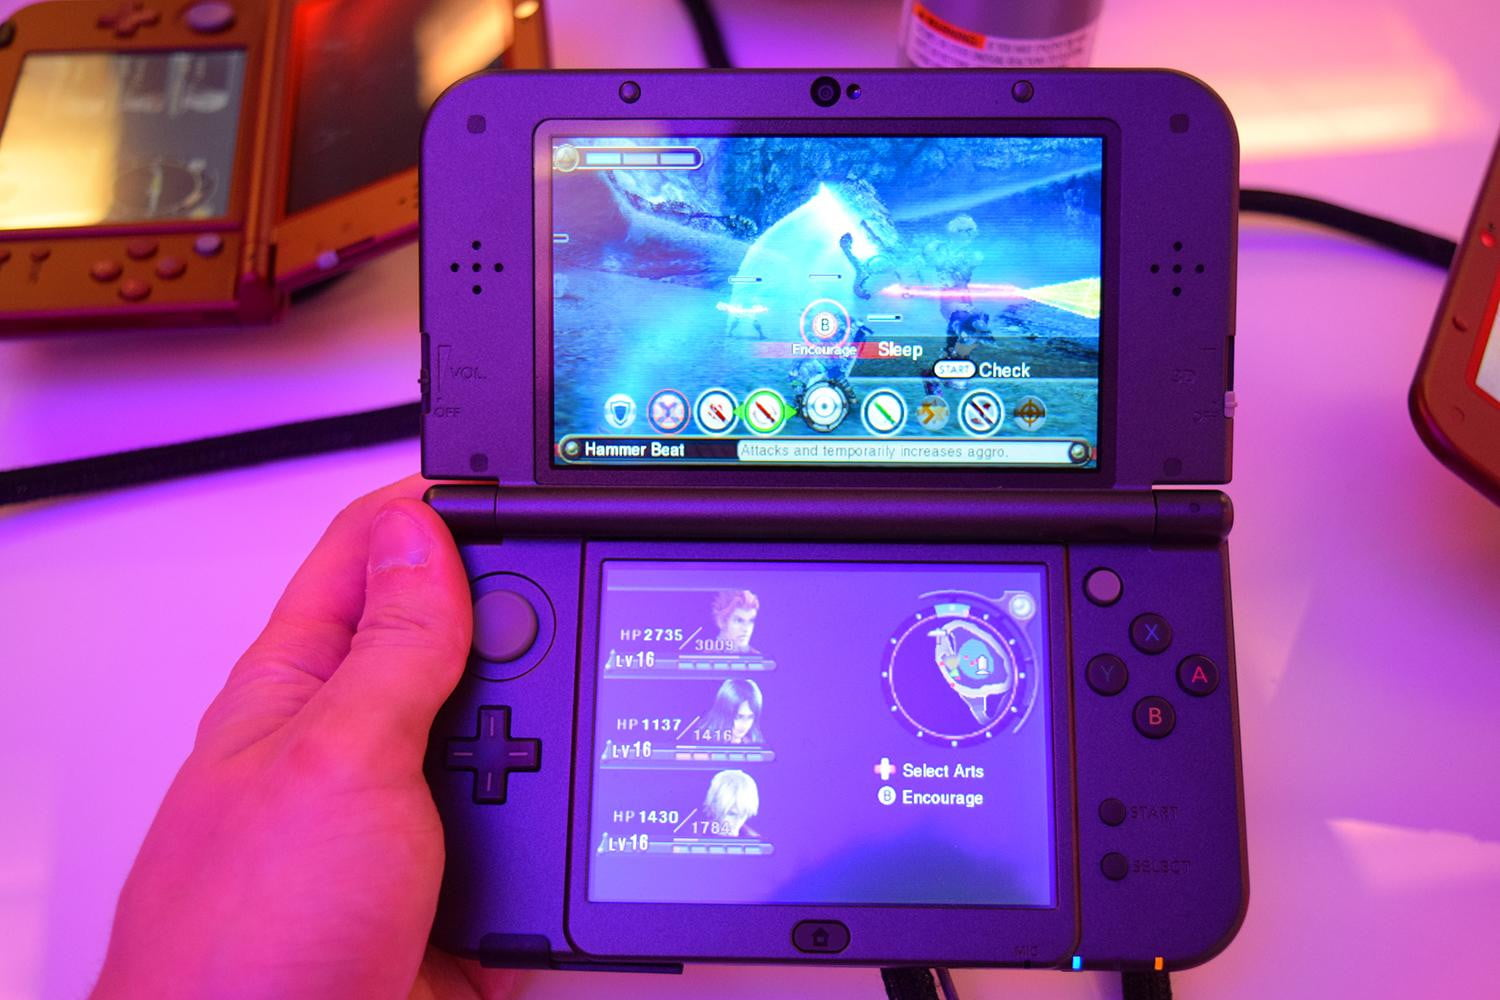 New Nintendo 3DS XL Review Handheld Gaming Console Digital Trends